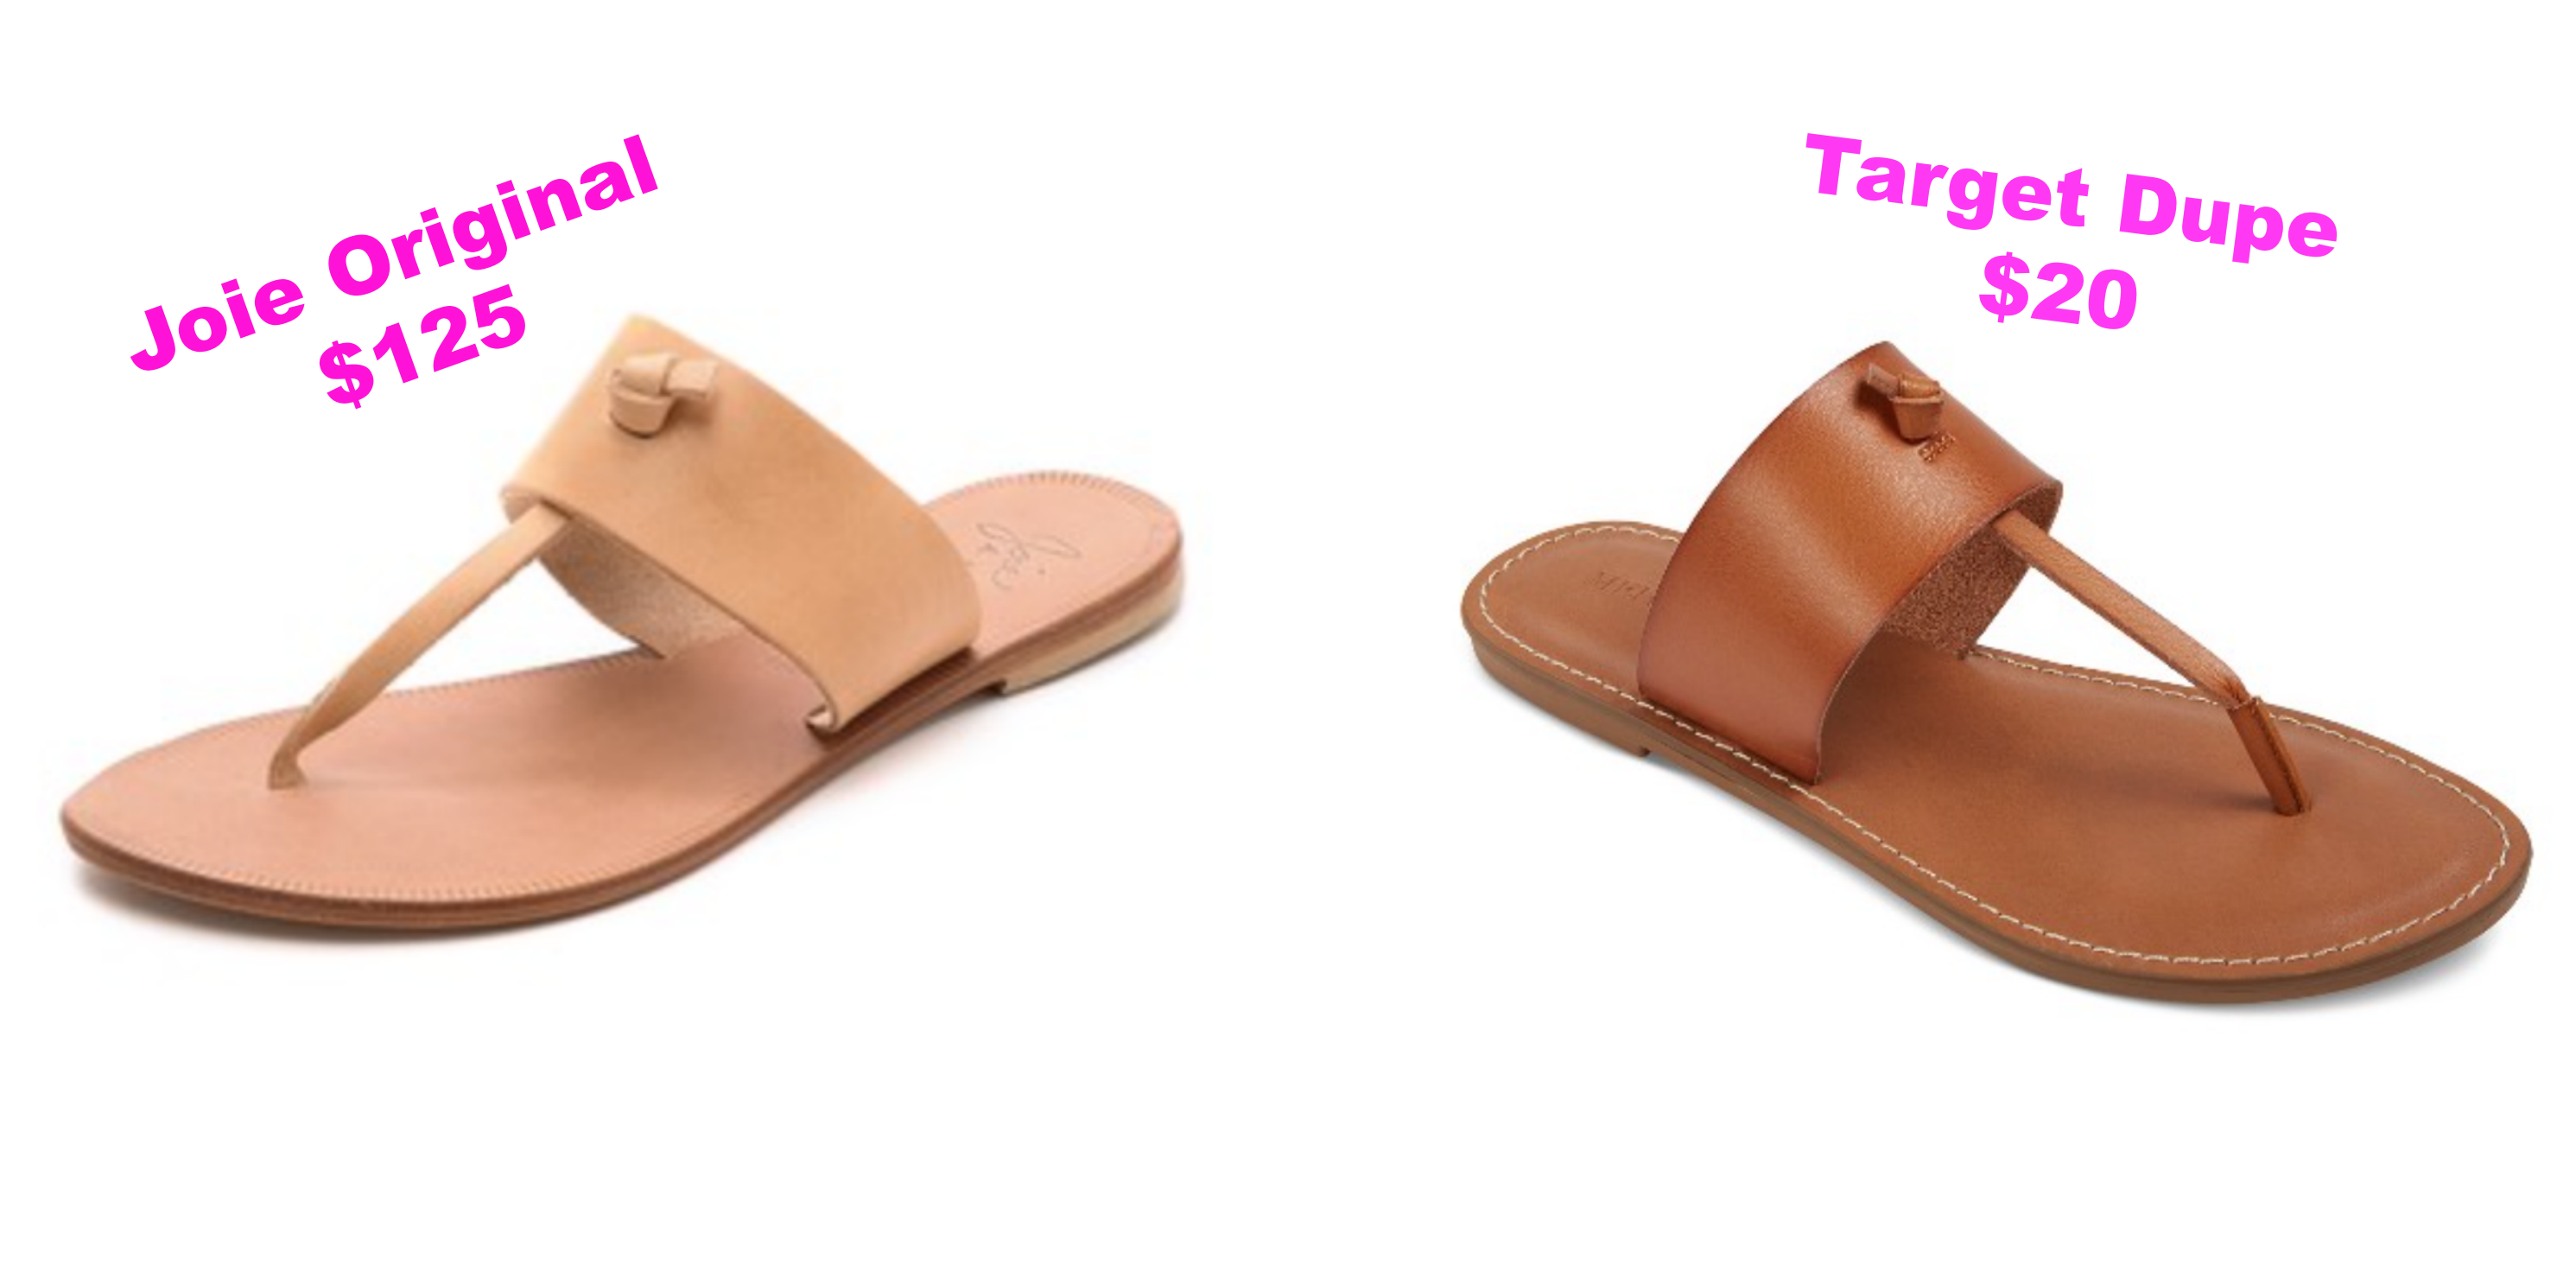 Target Dupe For Joie Sandals - Communikait